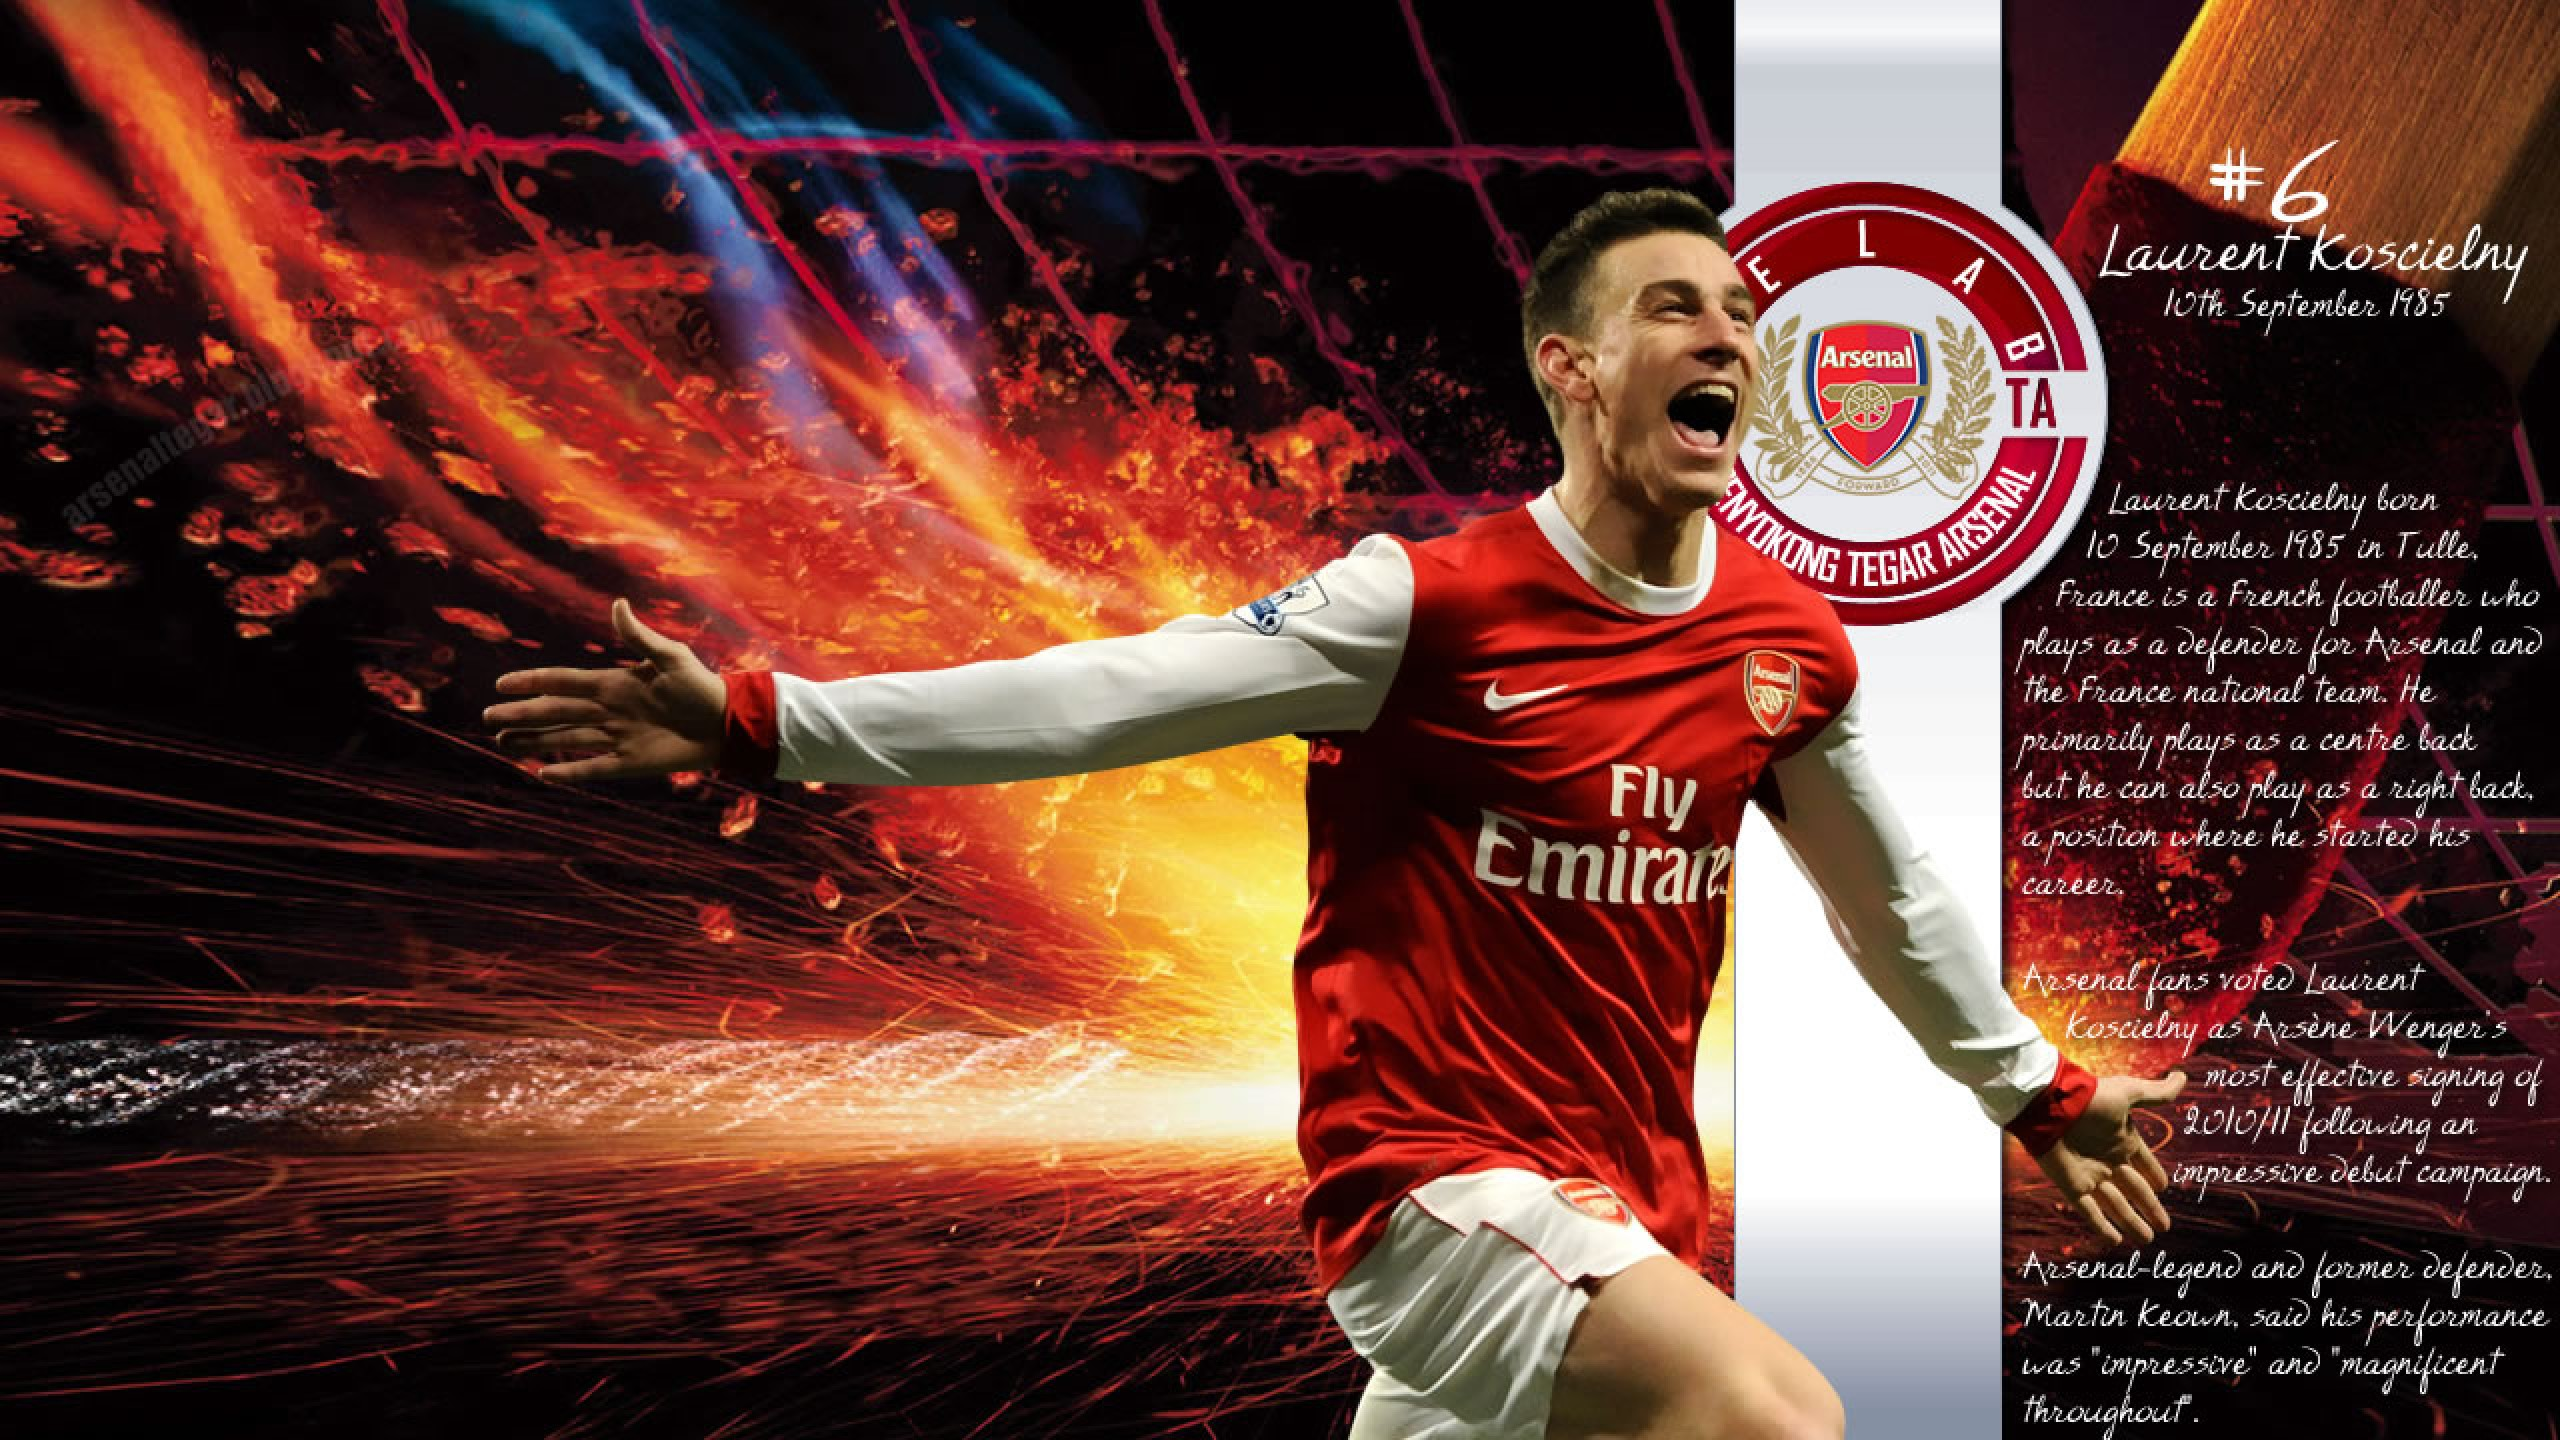 arsenal Arsenal Football HD wallpapers backgrounds images FHD 4k 2560x1440